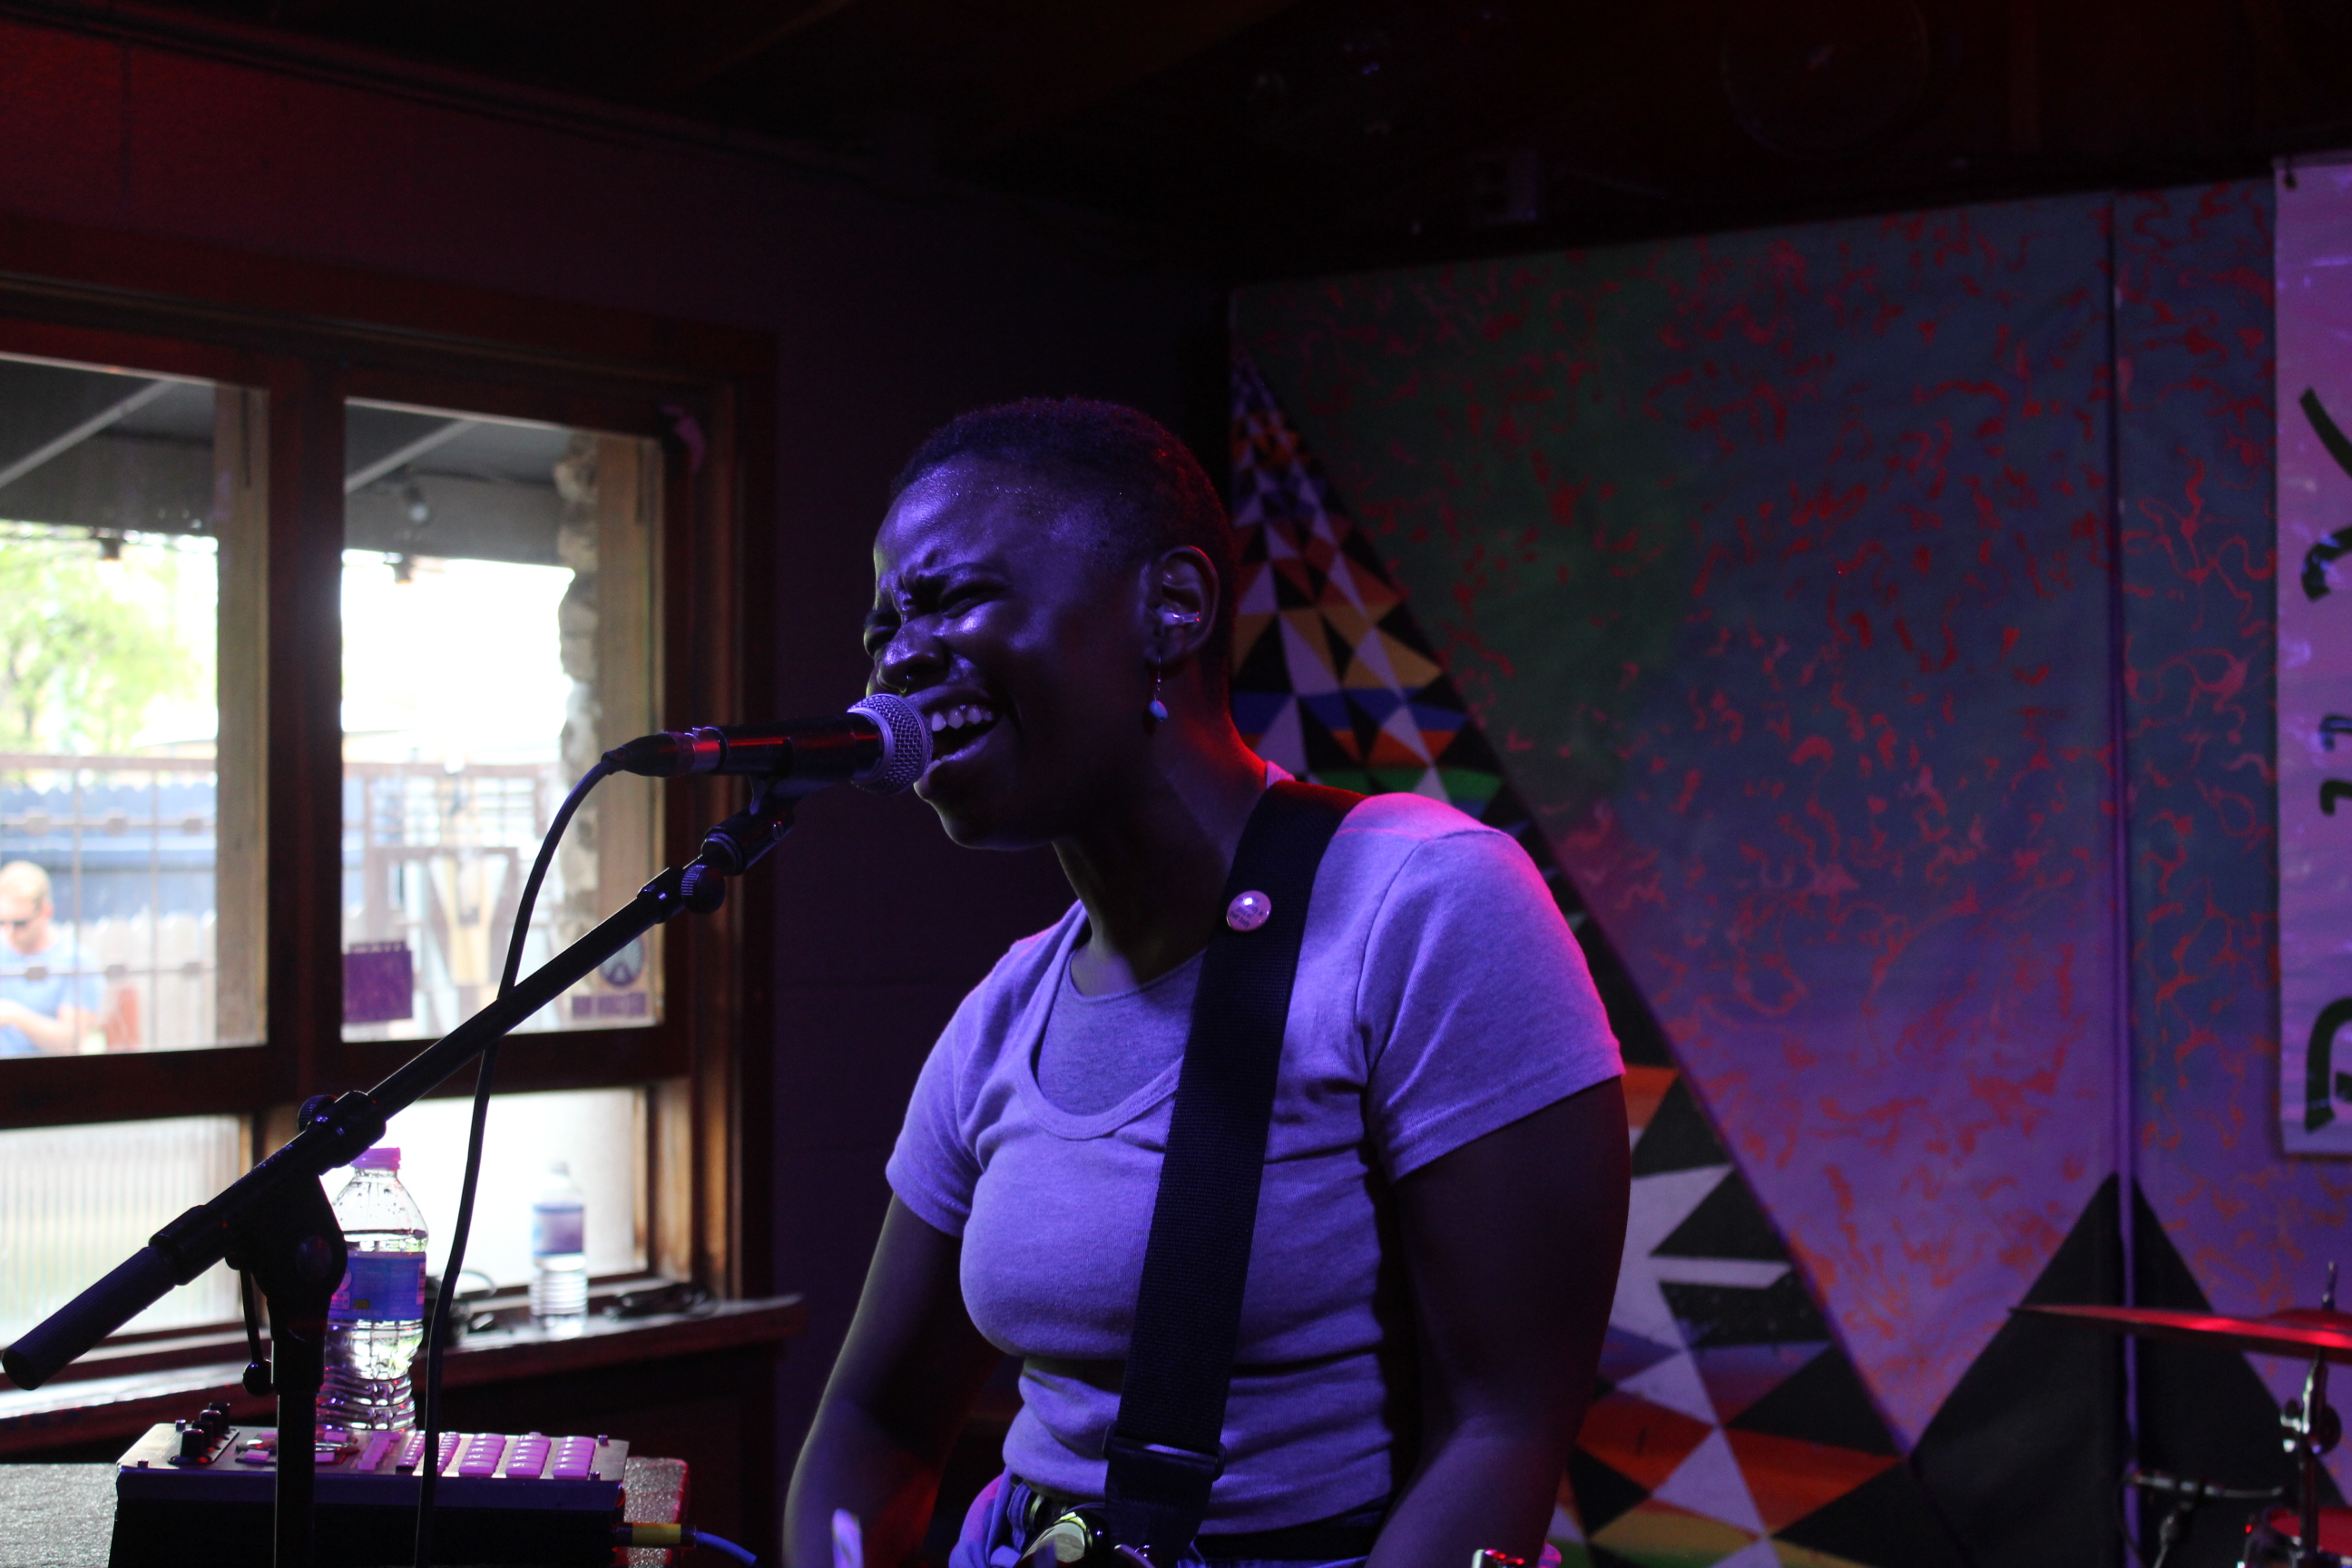 Here's Vagabon at SXSW in simpler times (2017... though she does have a new Sirius XMU session episode available on demand).